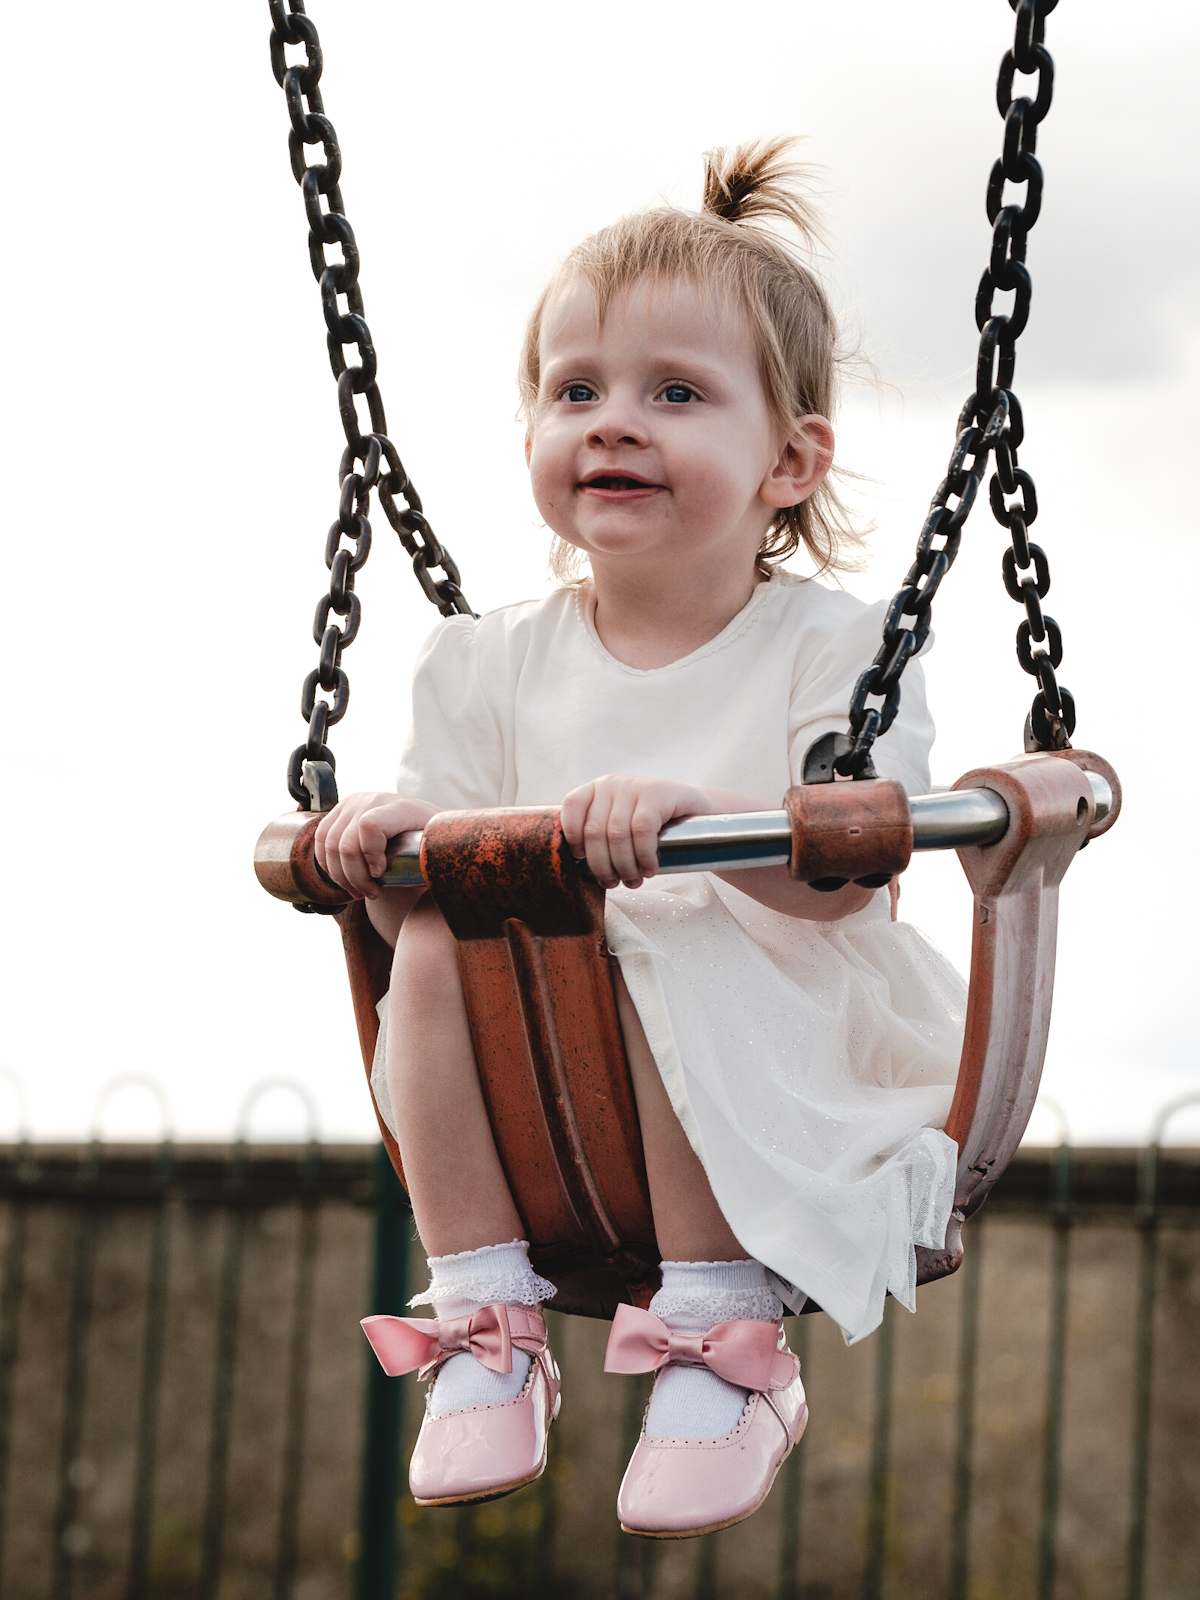 A young girl wearing a white dress and pink shoes with bows on is sitting in a swing